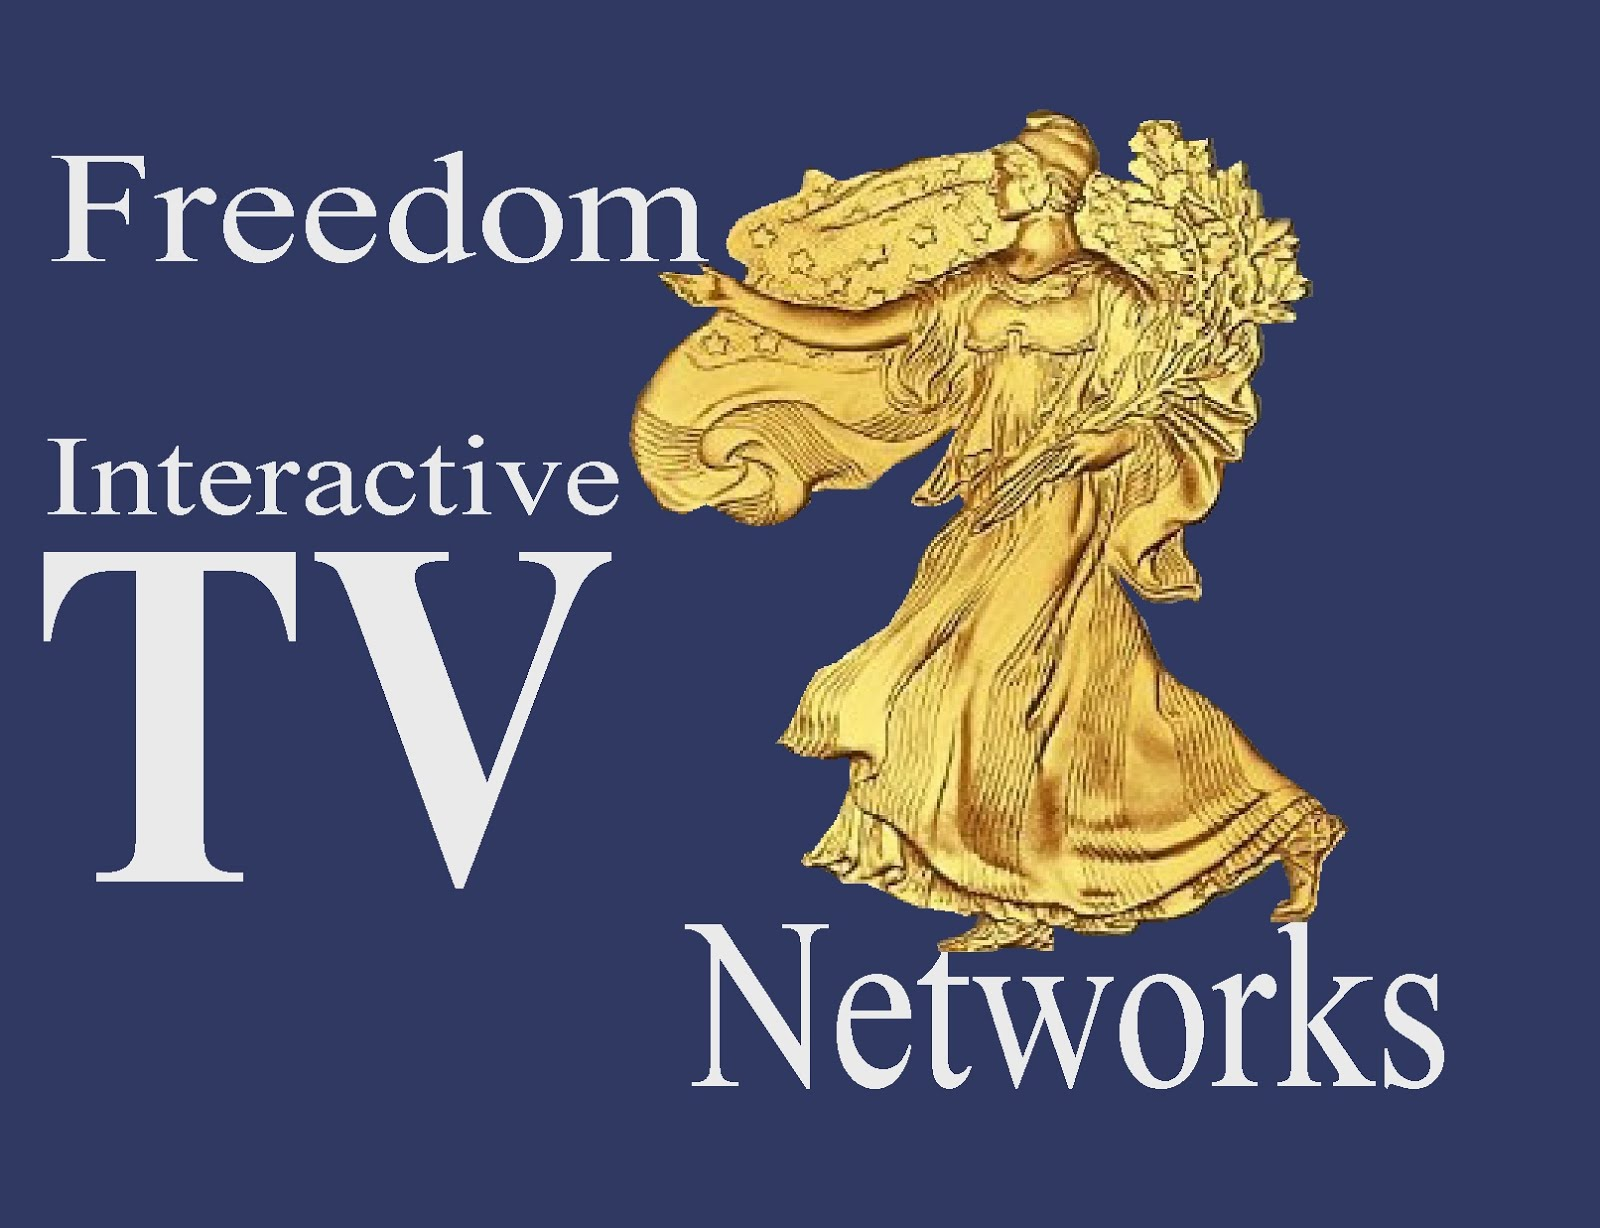 Freedom TV Networks